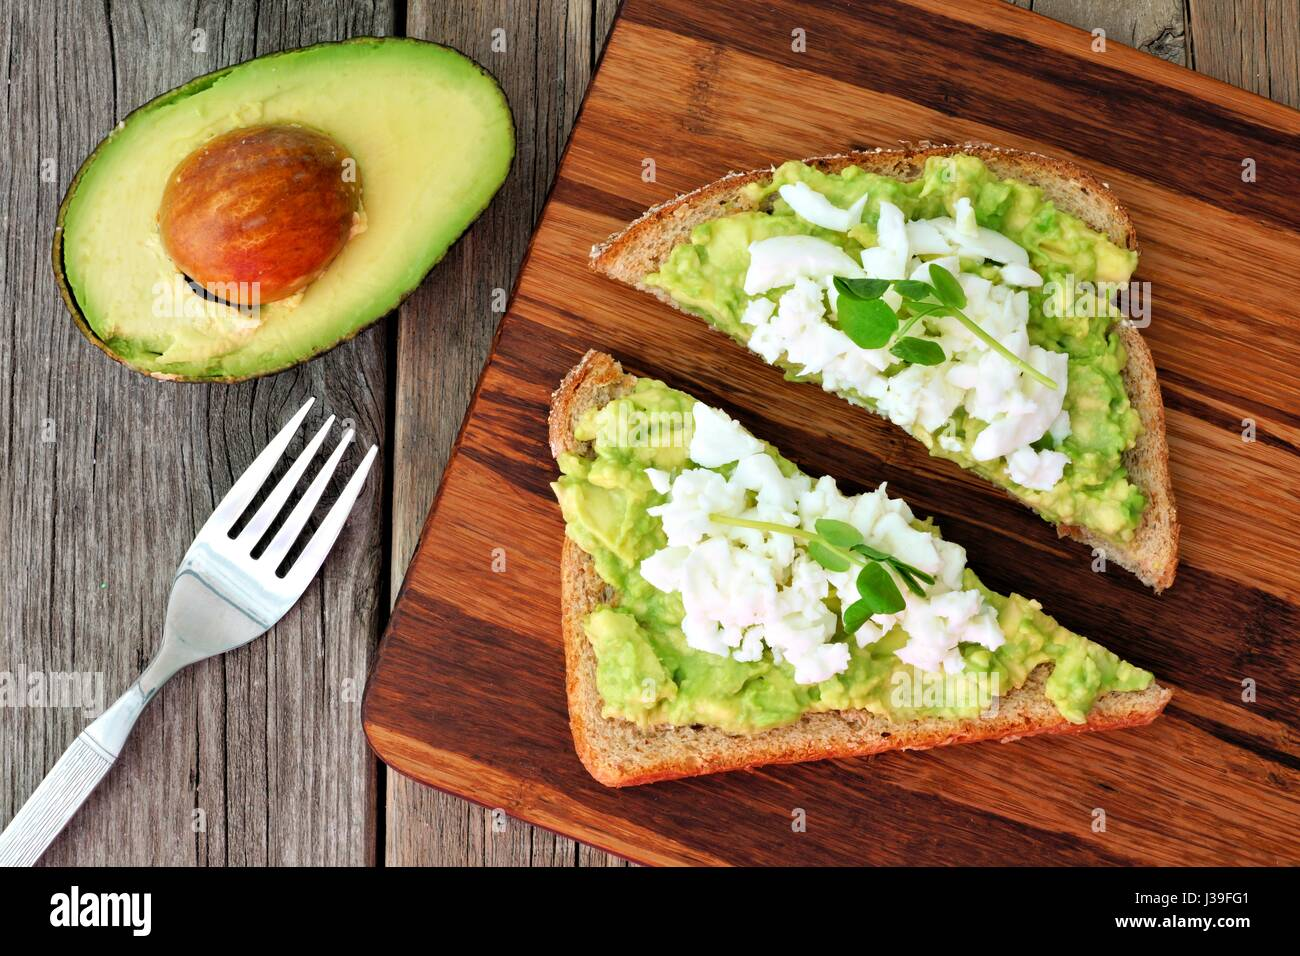 Avocado toast with egg whites and pea shoots on wooden board, overhead view - Stock Image